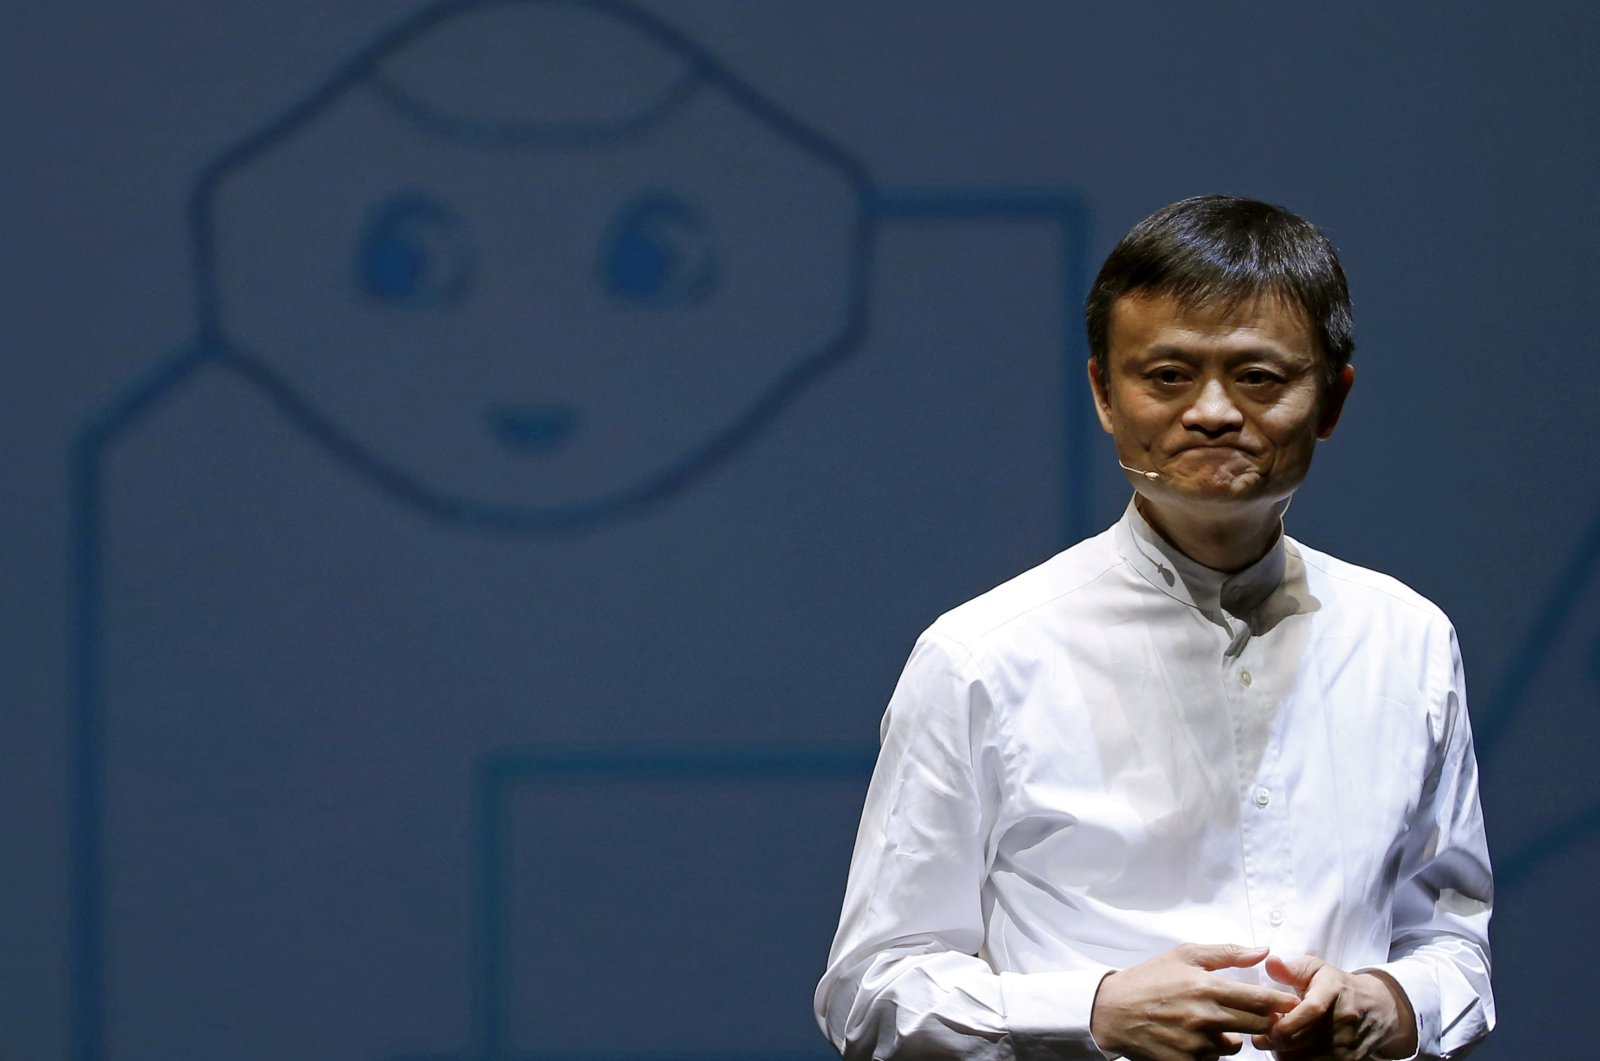 Jack Ma, founder and executive chairman of China's Alibaba Group, speaks during a news conference in Chiba, Japan, June 18, 2015. (Reuters Photo)